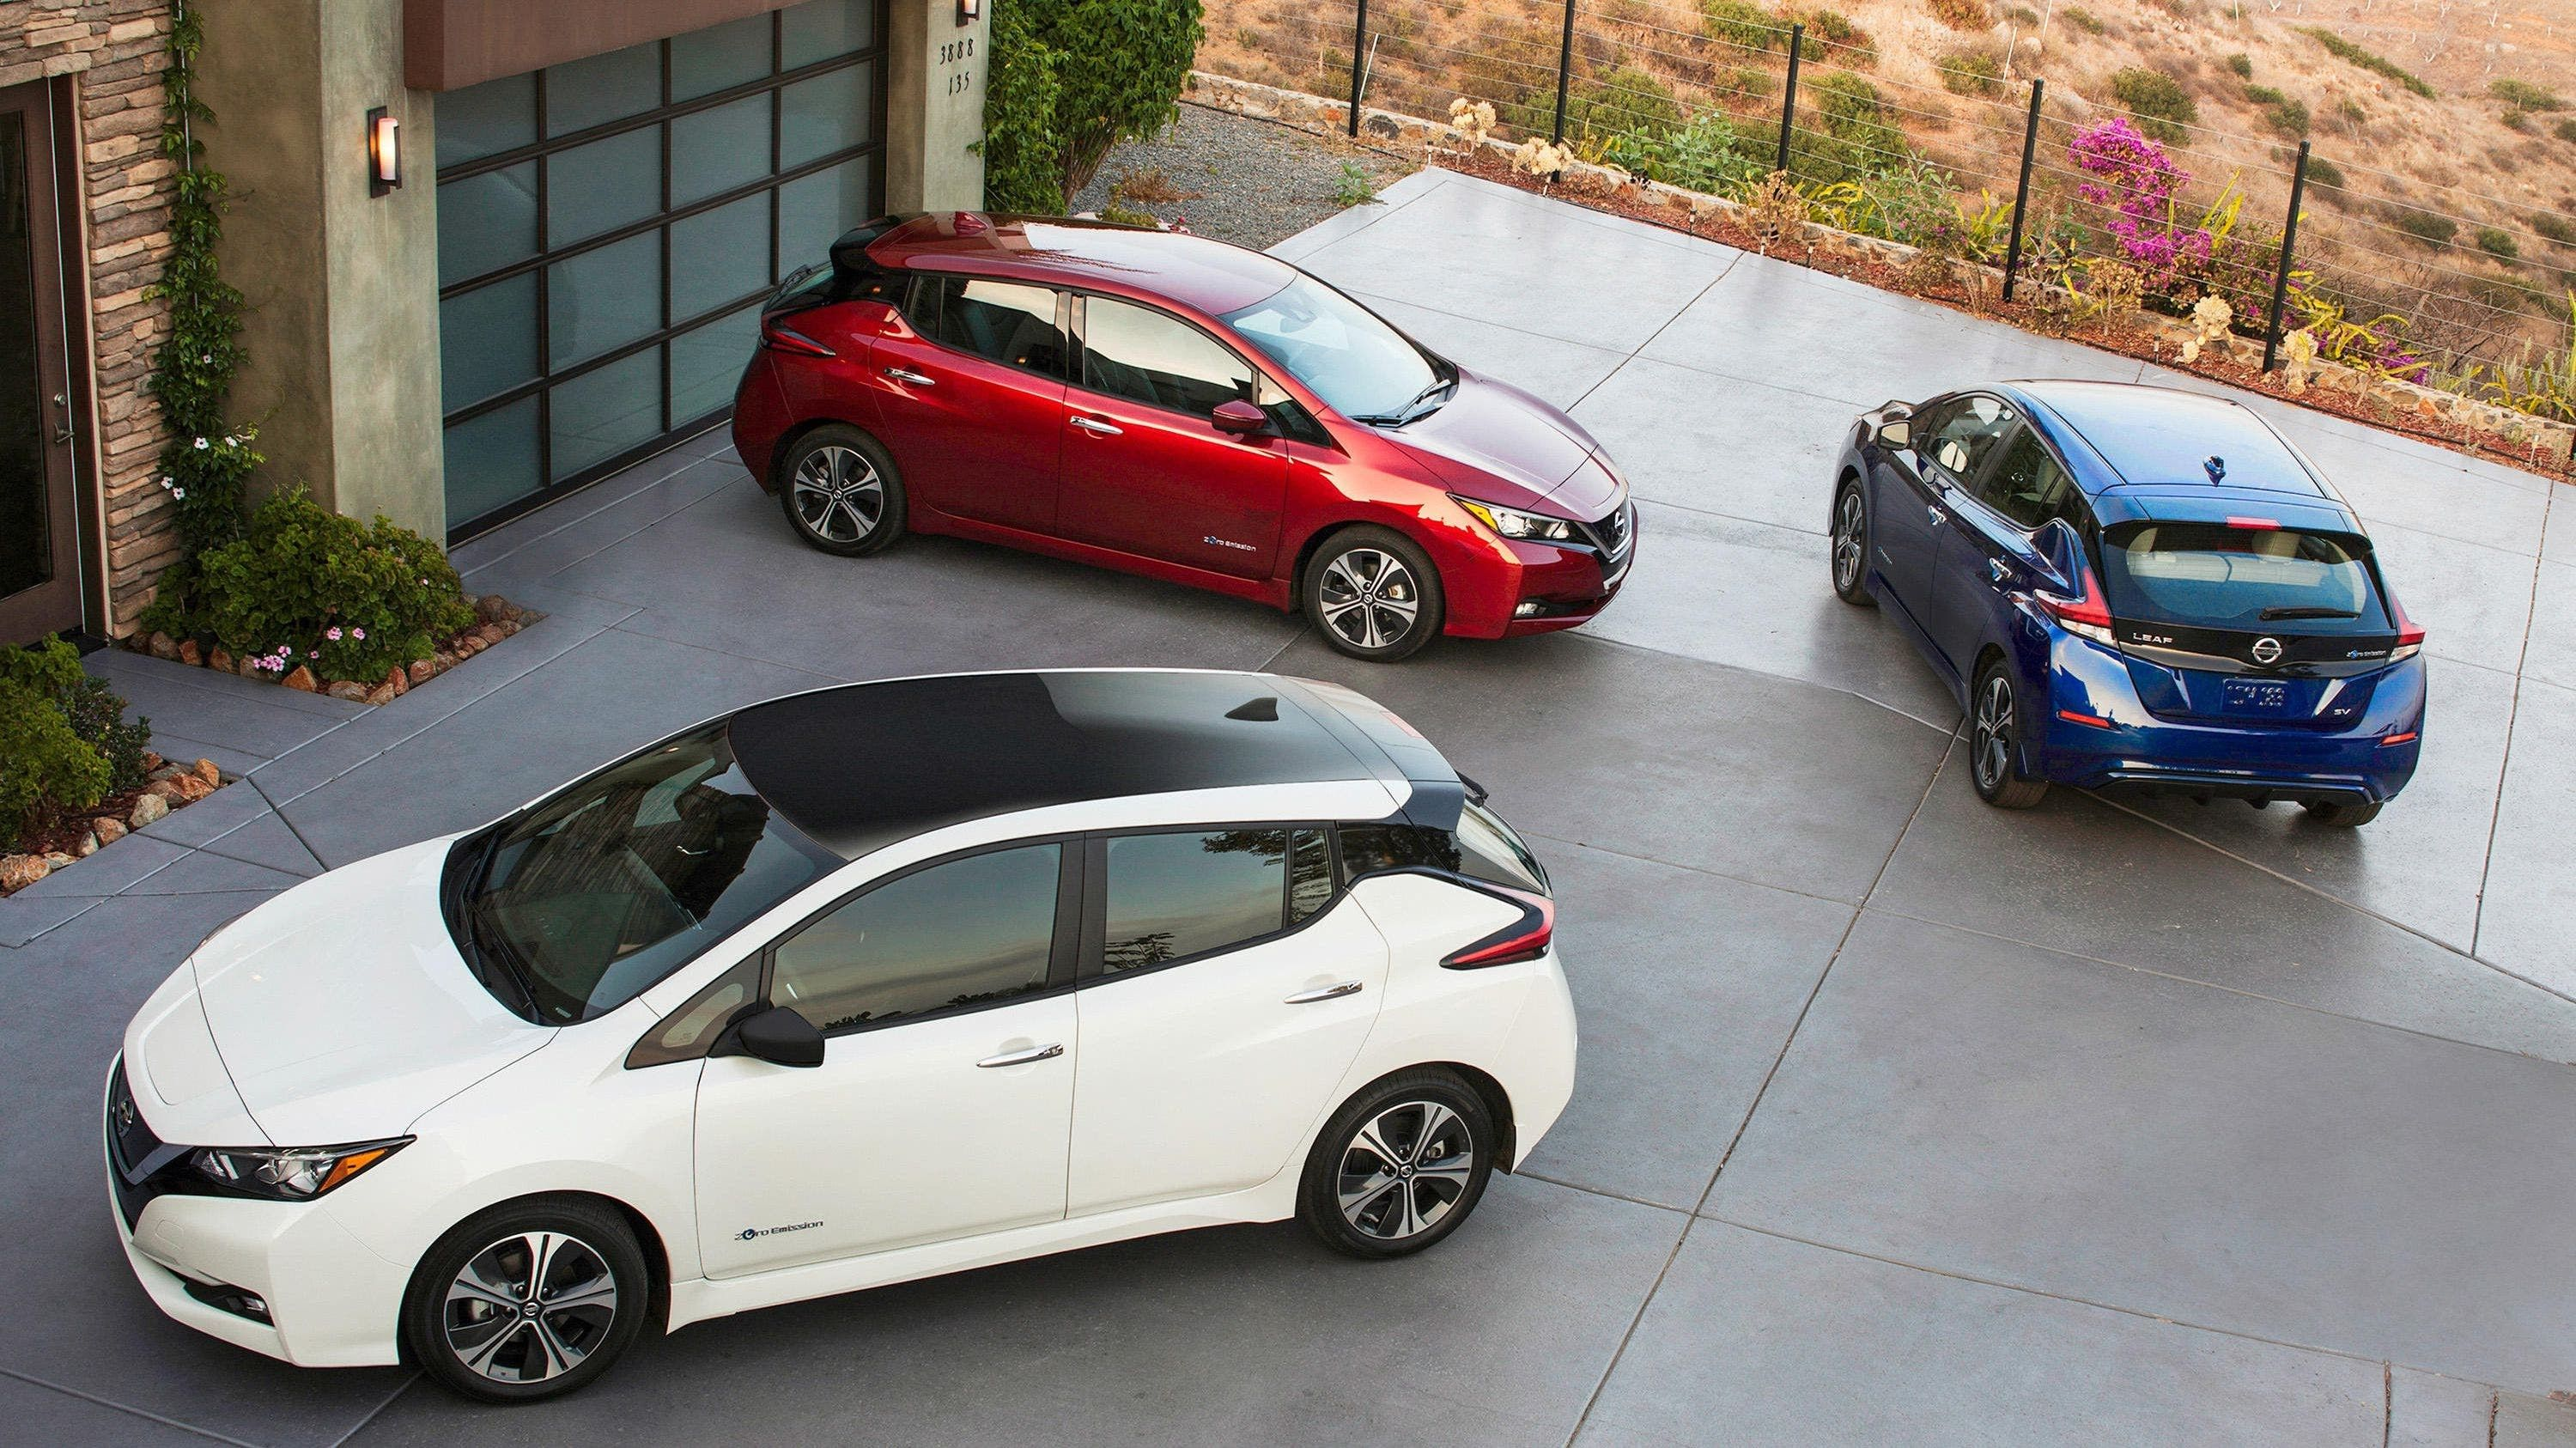 2021 Nissan Leaf Review - Trims, Prices, Range, Charging Time, Features, And Rivals